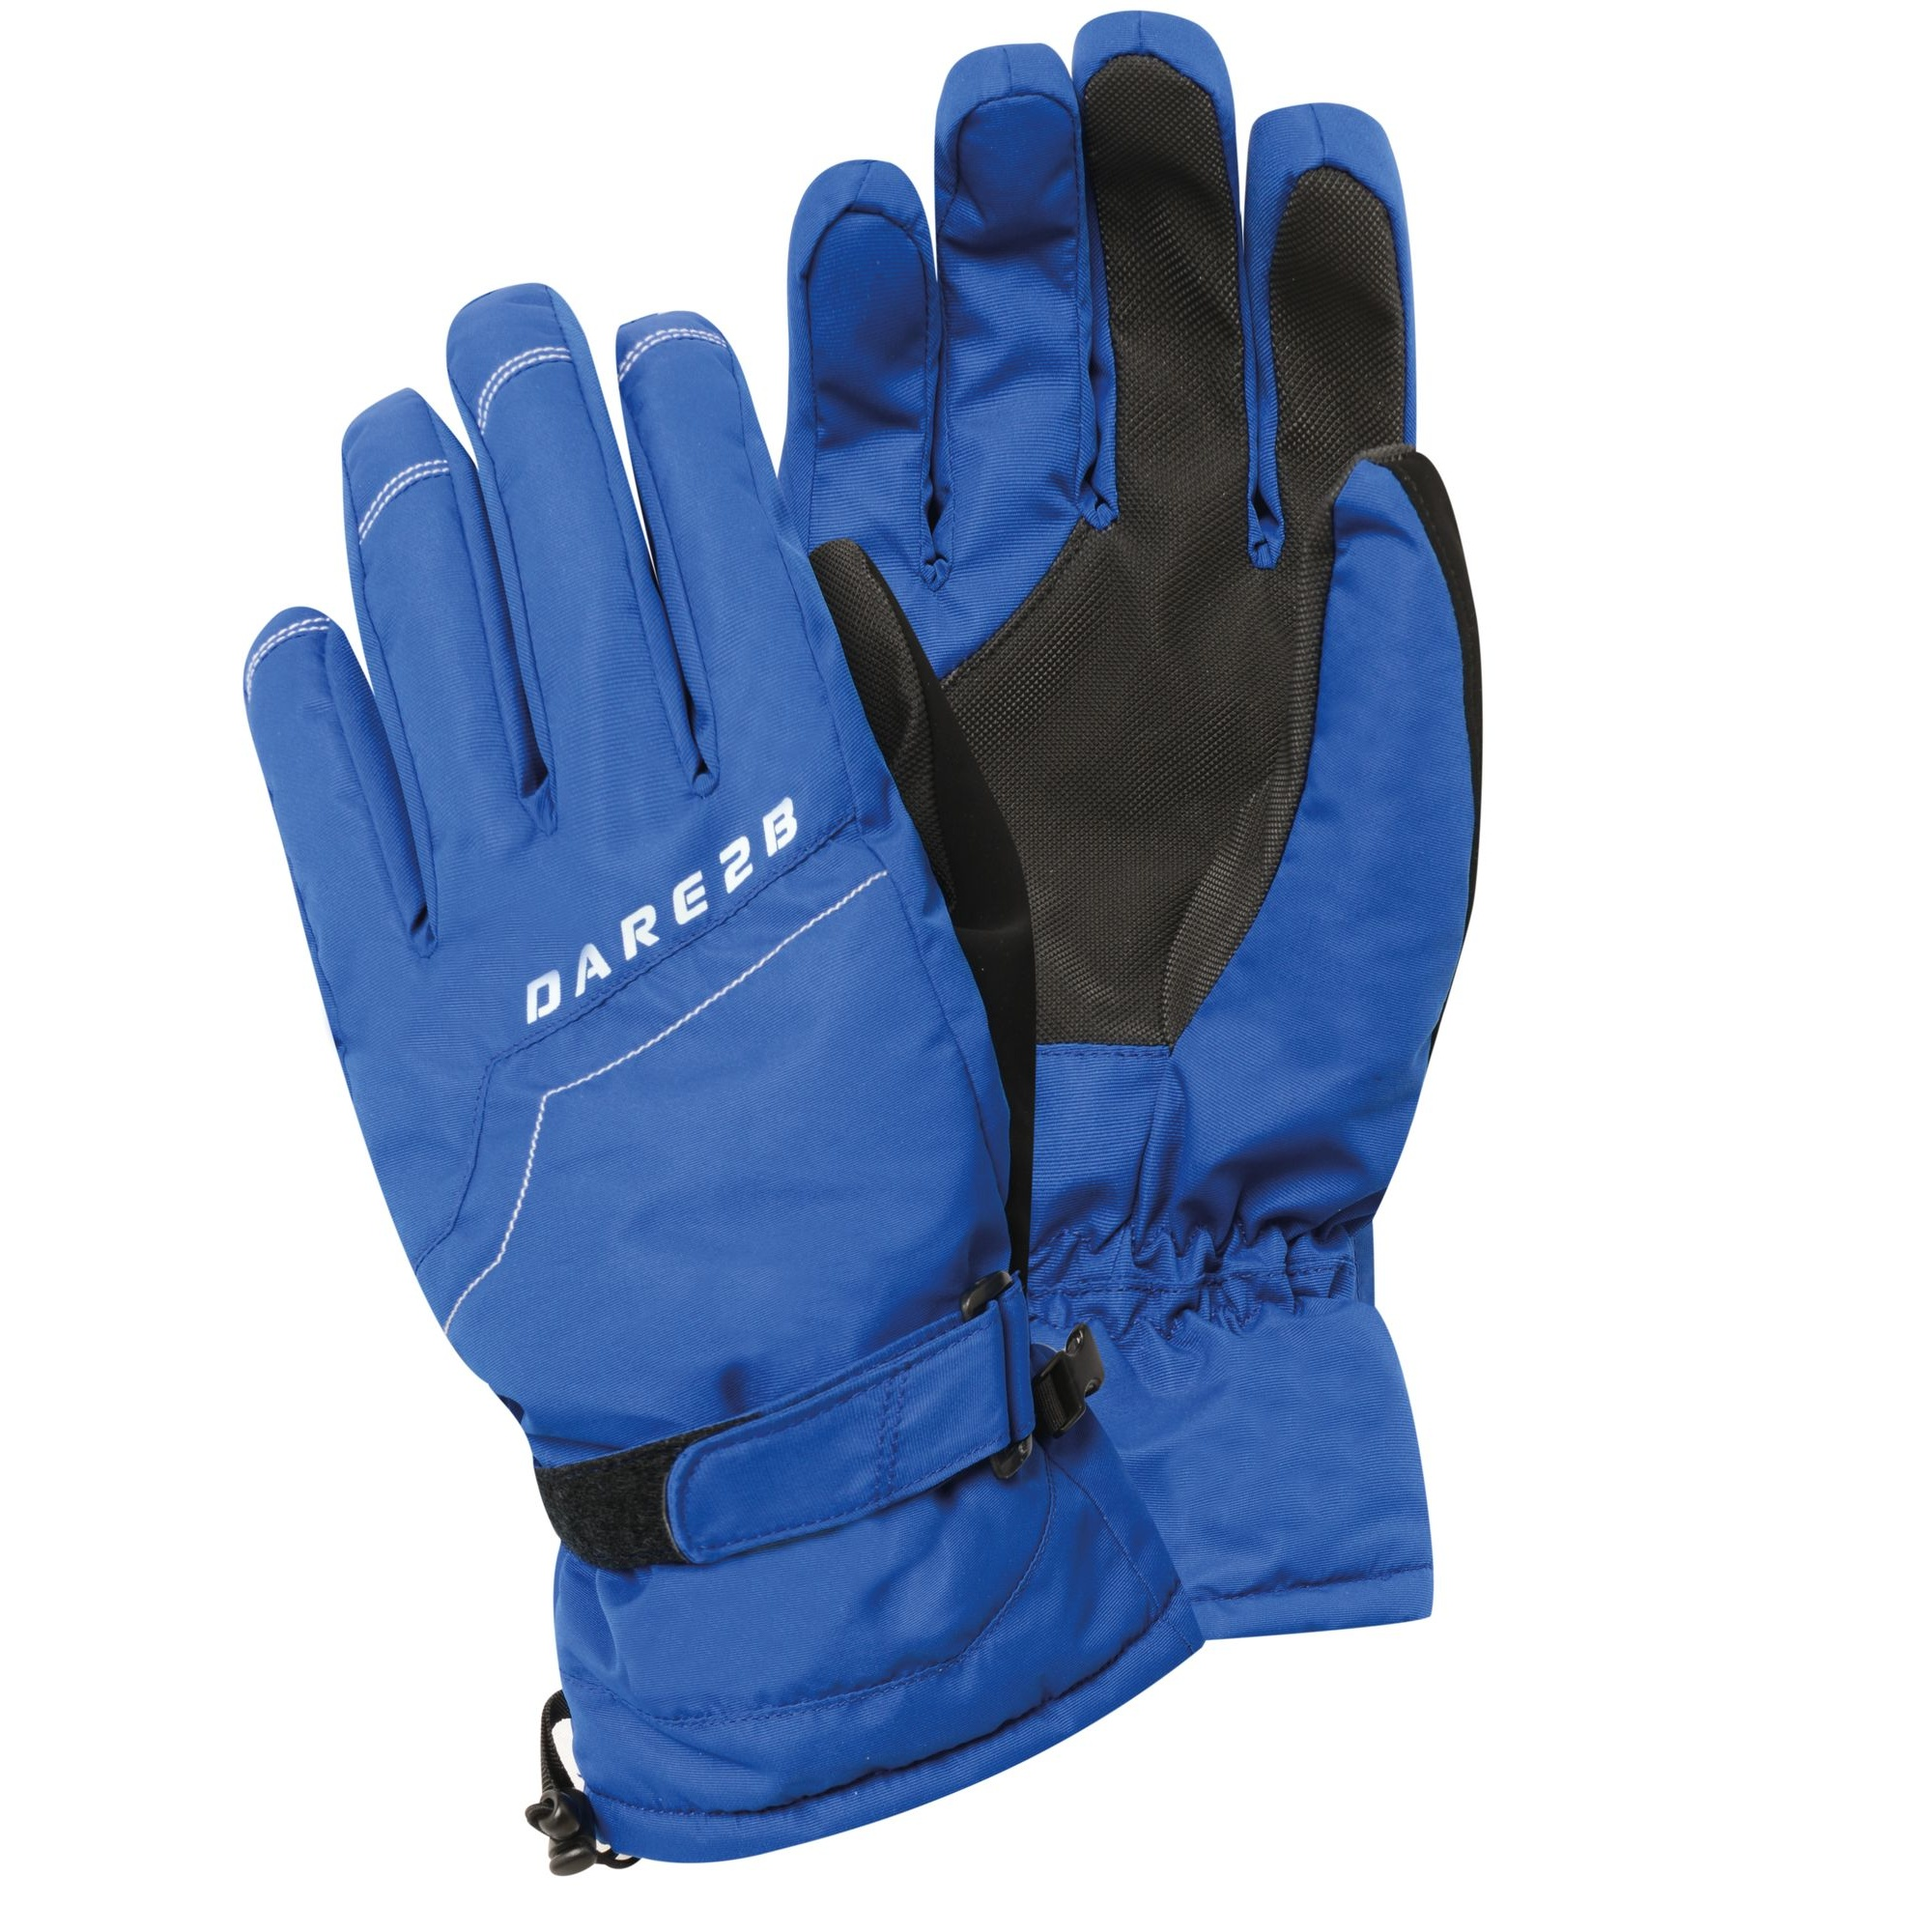 Mens ski gloves xl -  Picture 3 Of 4